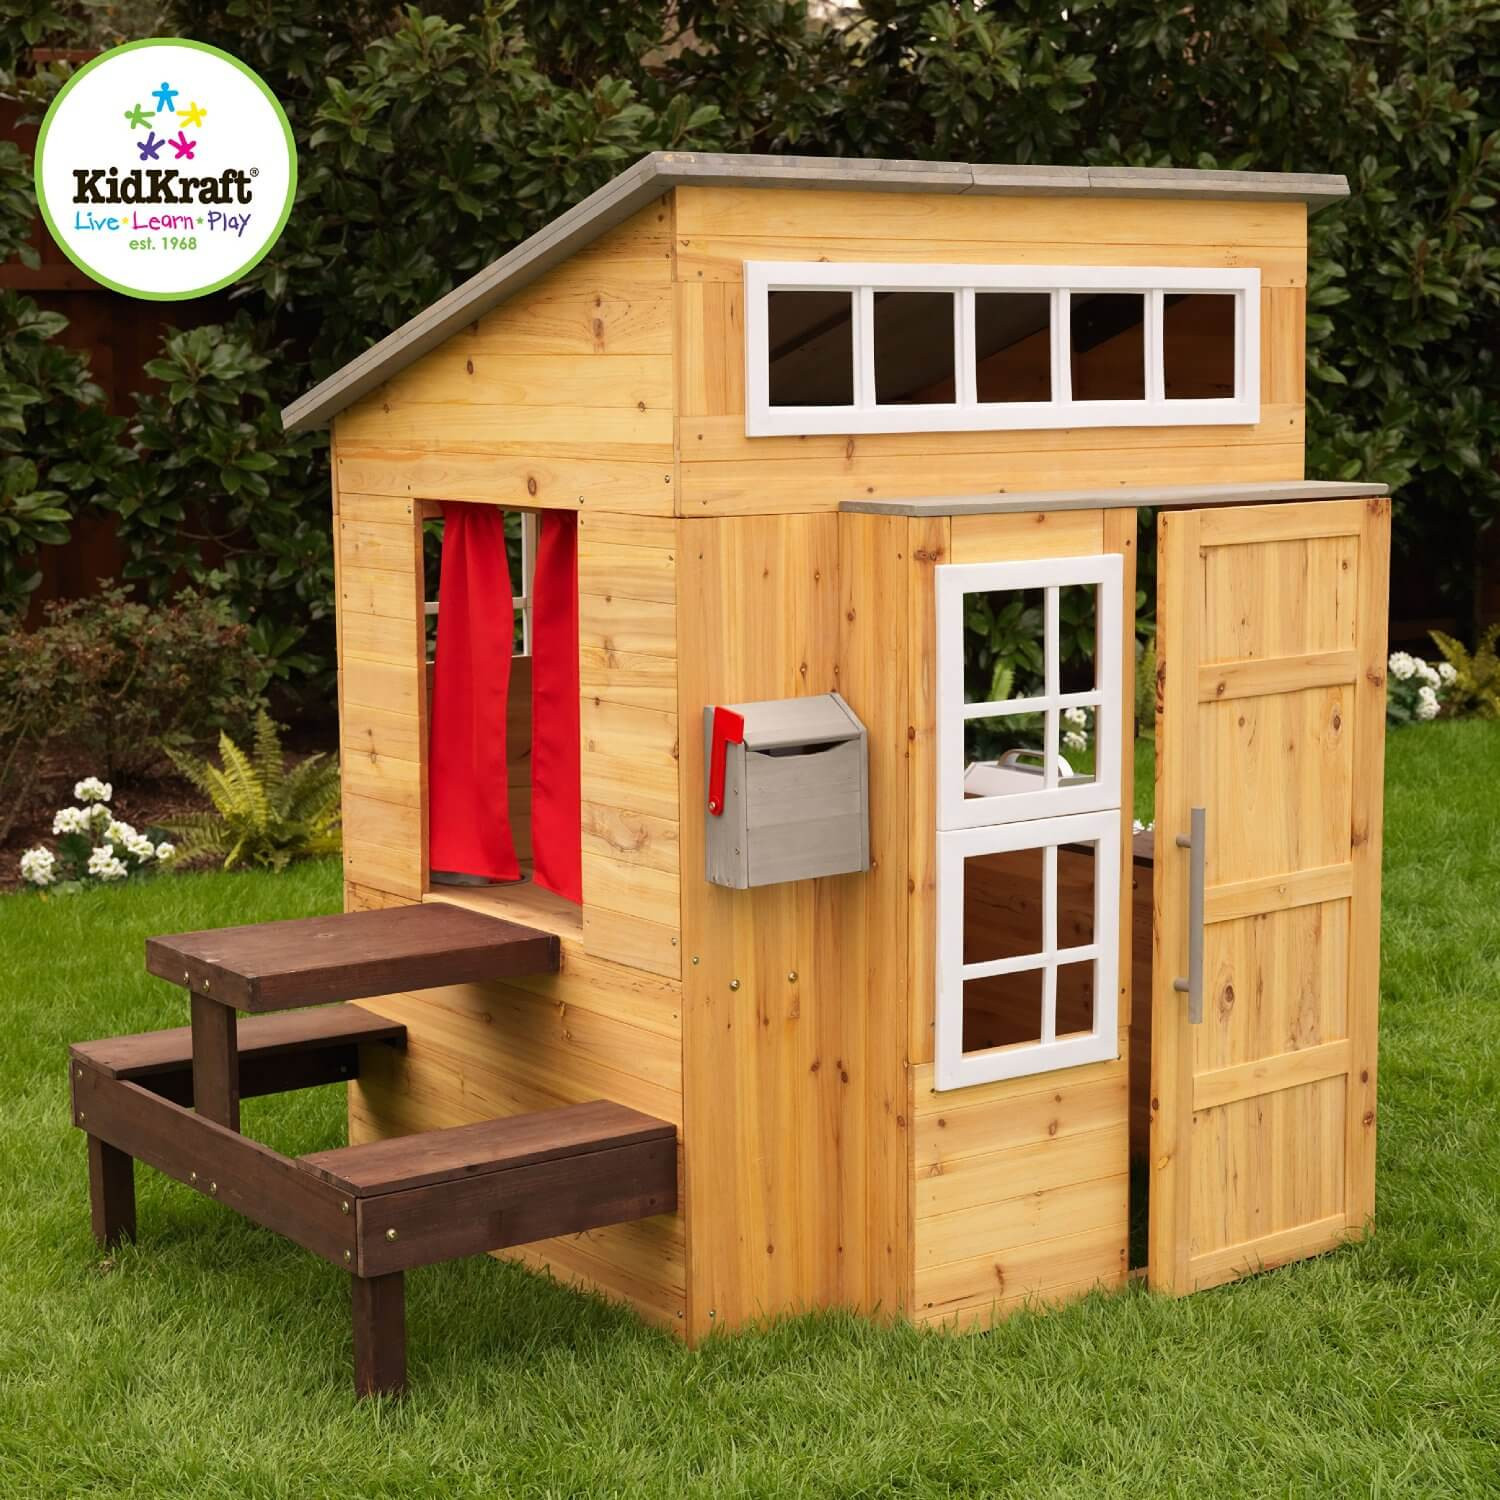 DIY Wood Playhouse  How to Build a Playhouse with Wooden Pallets Step by Step